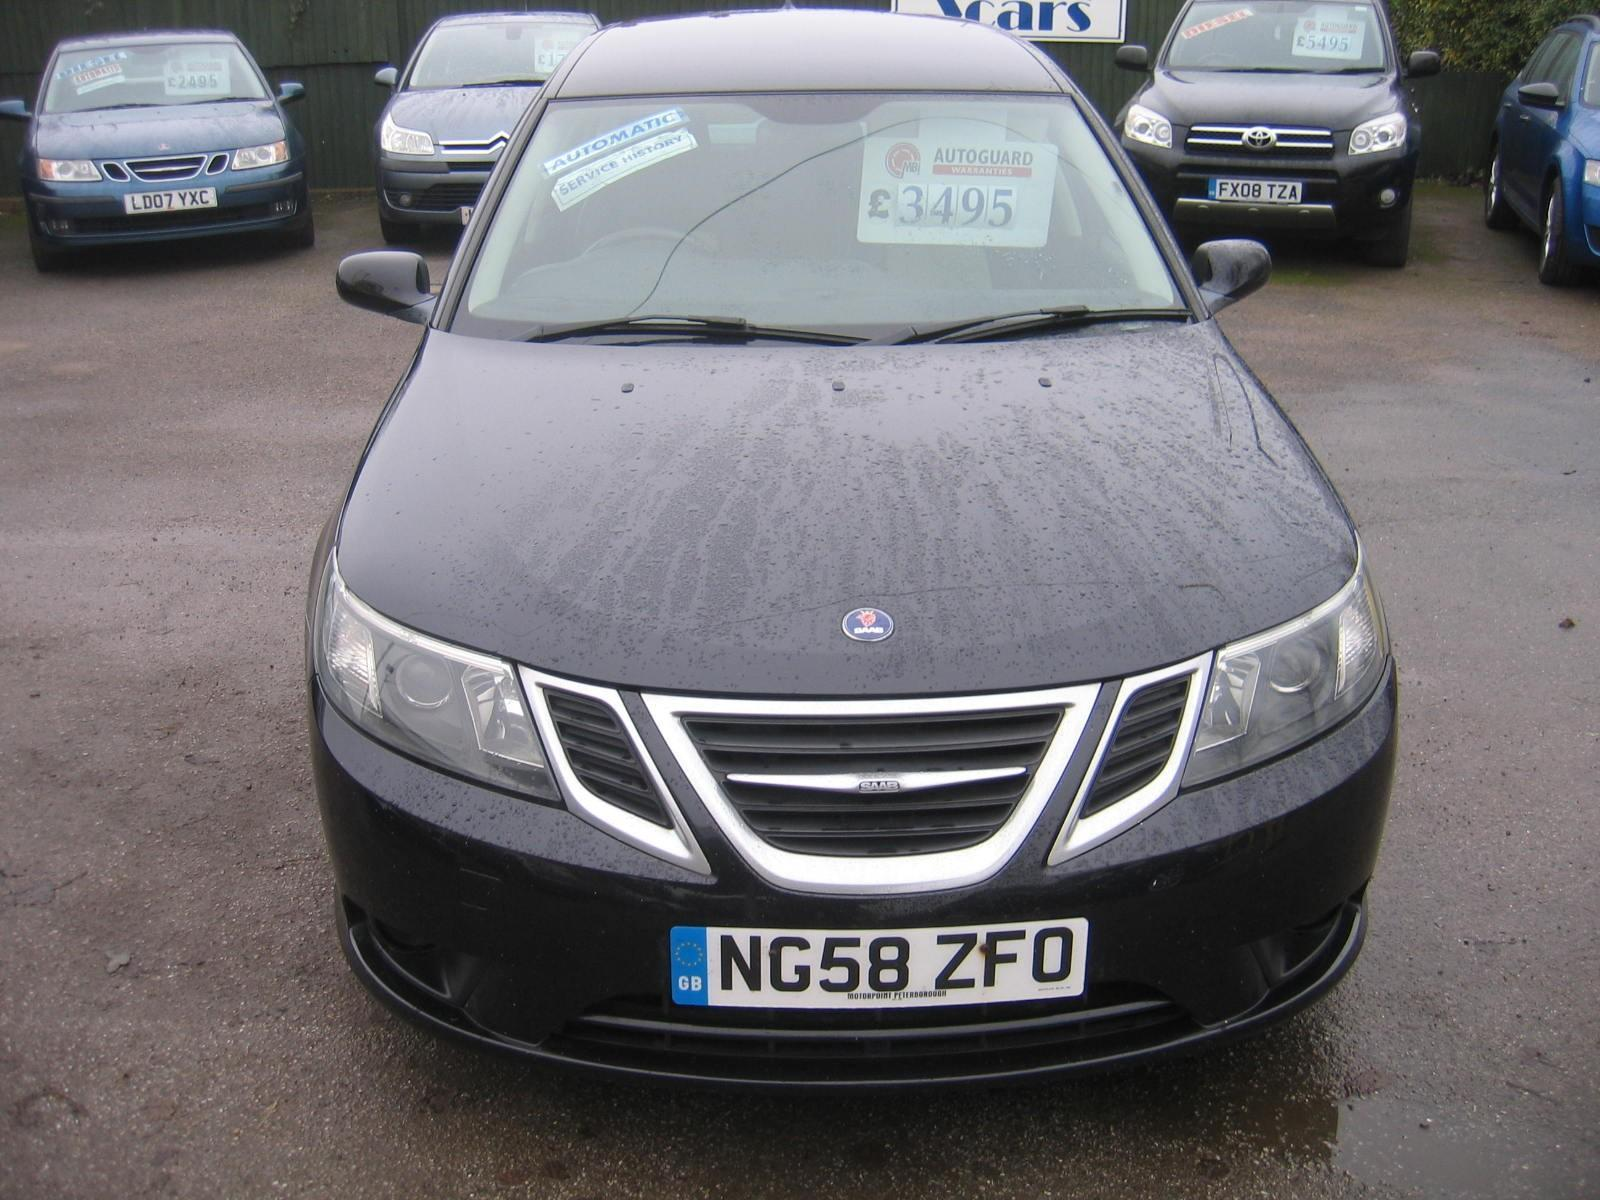 Used 2008 58 SAAB 9 3 18t SPORTWAGEN AUTOMATIC VECTOR SPORT IN